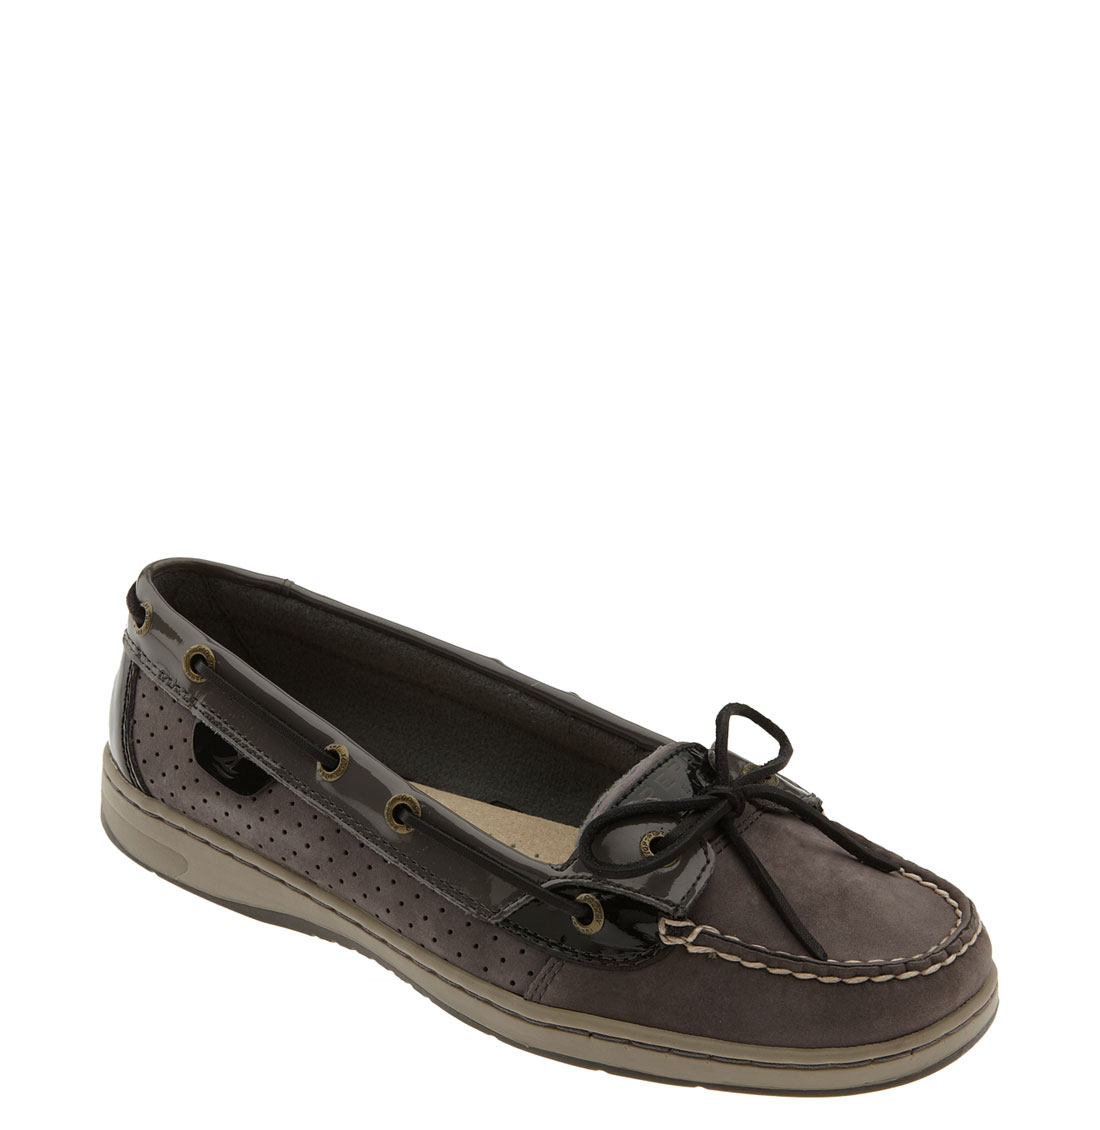 Sperry Top Sider Angelfish Boat Shoe In Black Graphite Suede